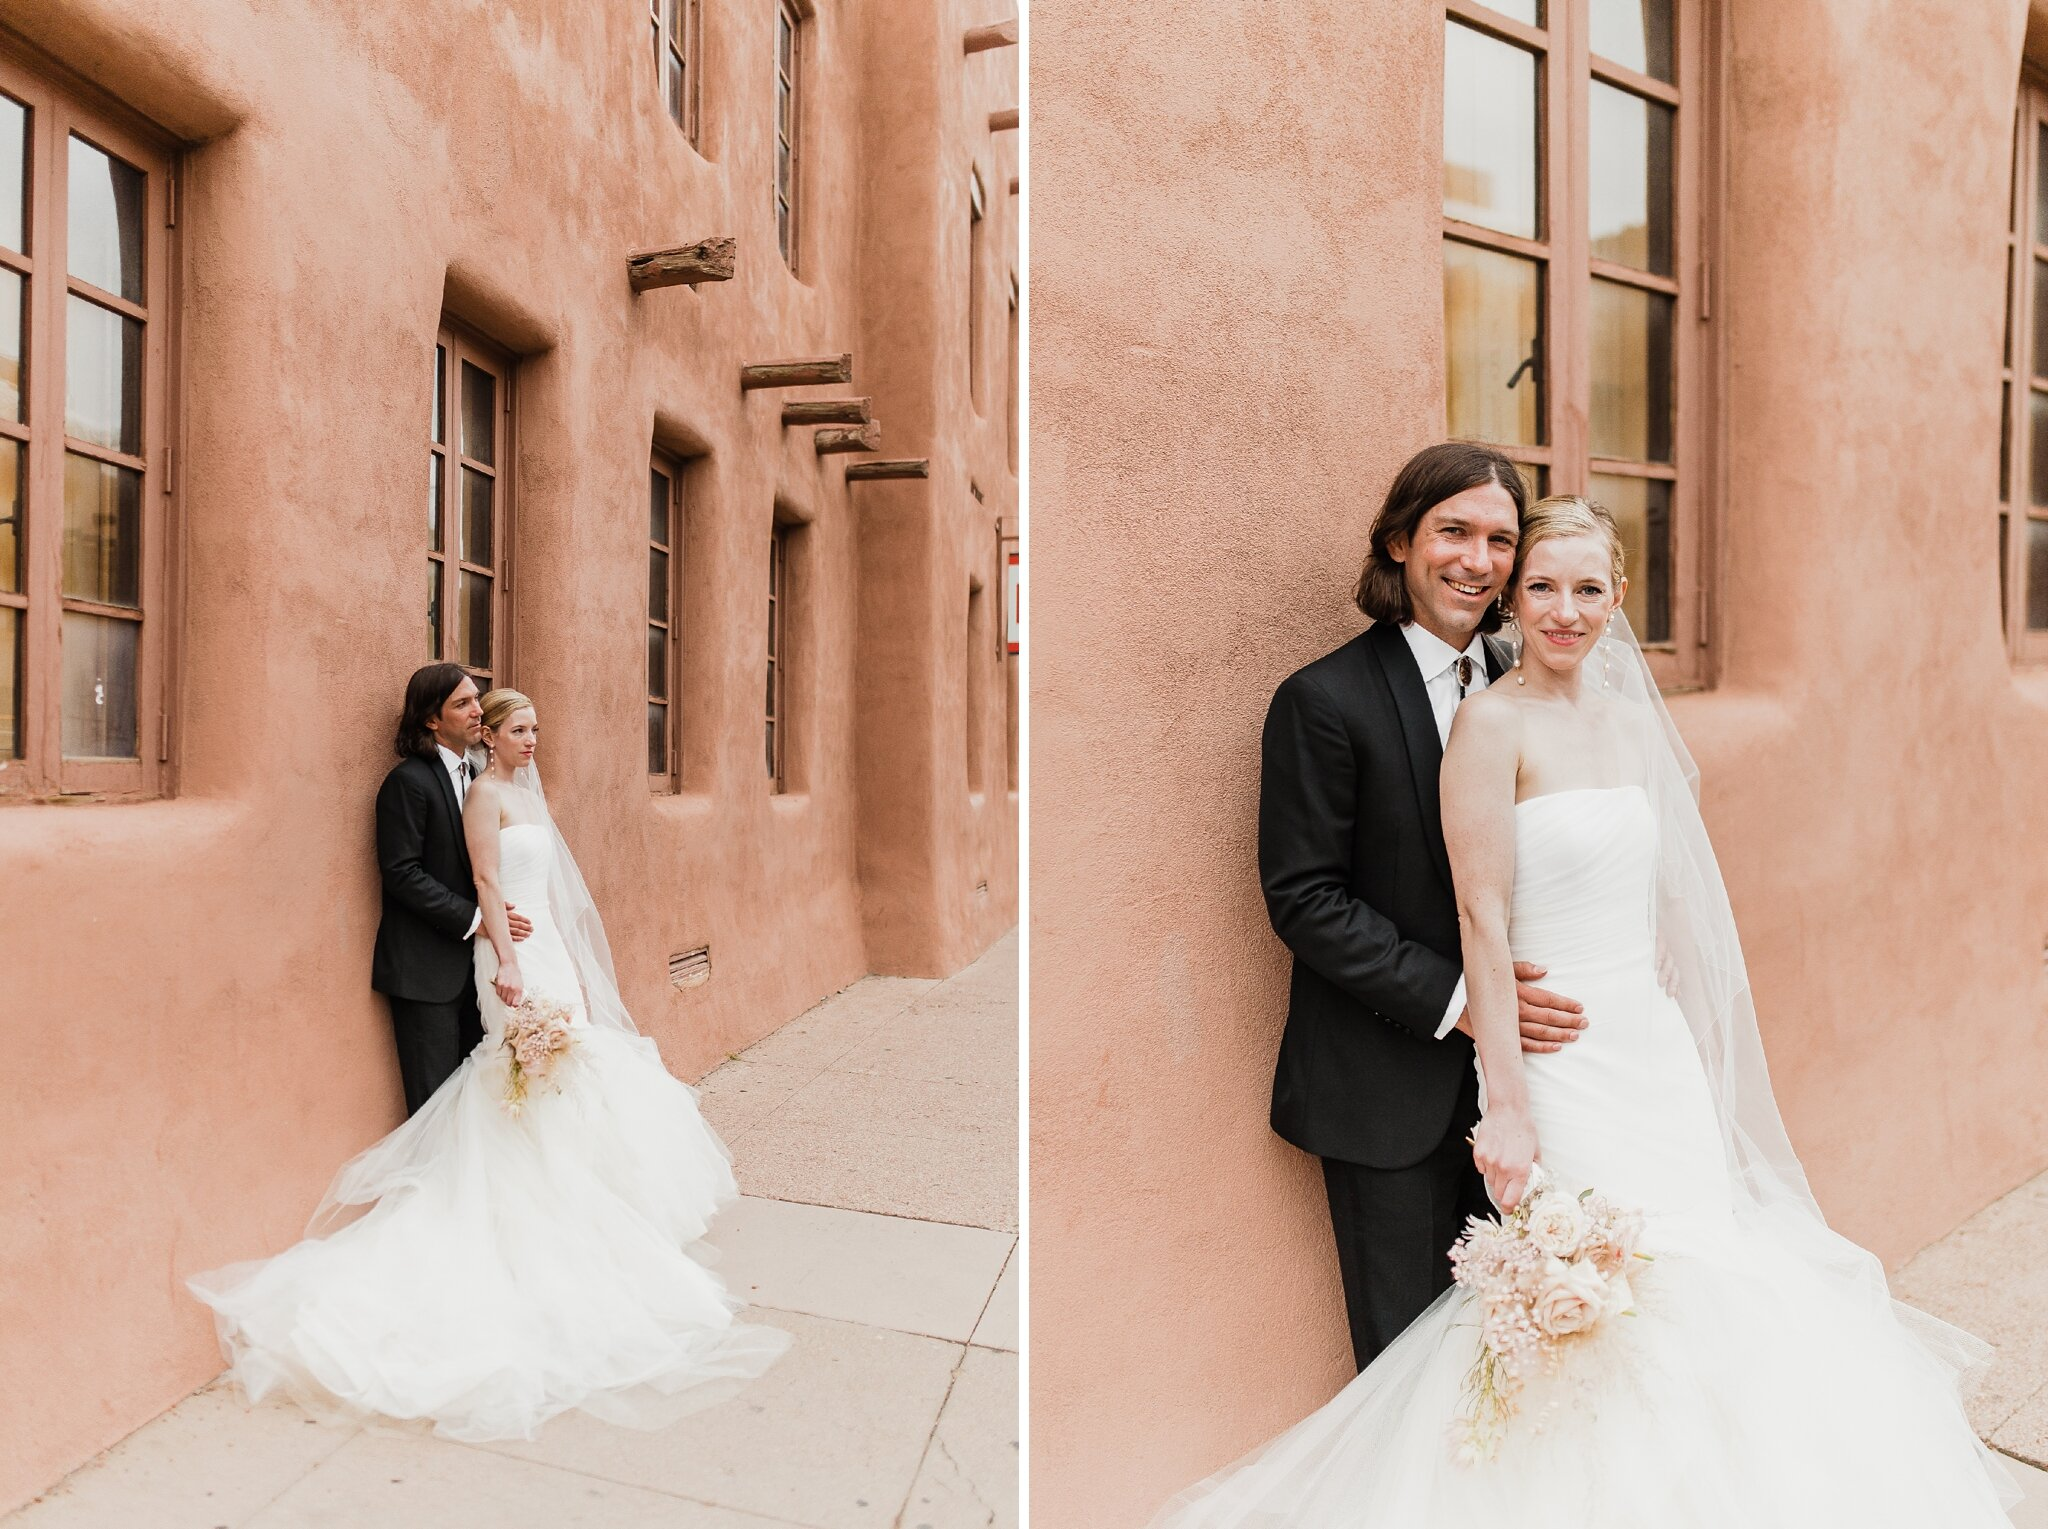 Alicia+lucia+photography+-+albuquerque+wedding+photographer+-+santa+fe+wedding+photography+-+new+mexico+wedding+photographer+-+new+mexico+wedding+-+la+fonda+wedding+-+la+fonda+on+the+plaza+-+santa+fe+wedding+-+brooklyn+bride_0083.jpg